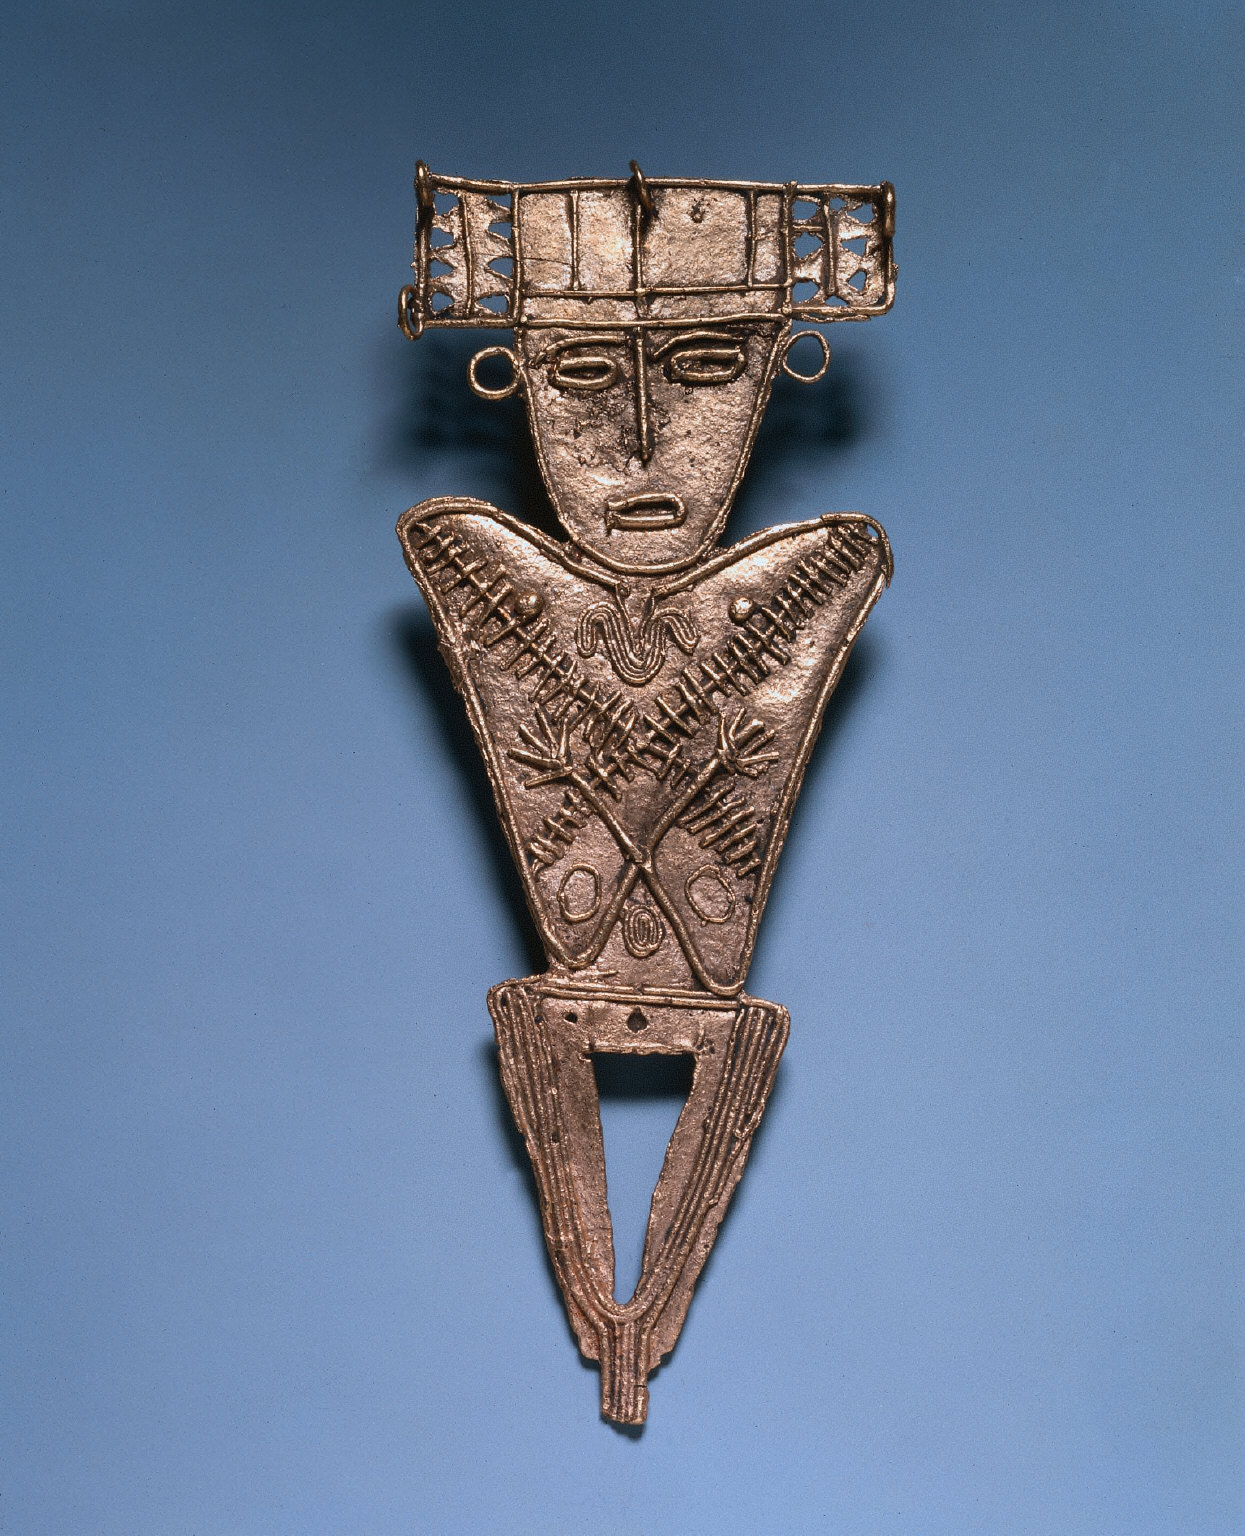 Votive Figurine with Crossed Arms